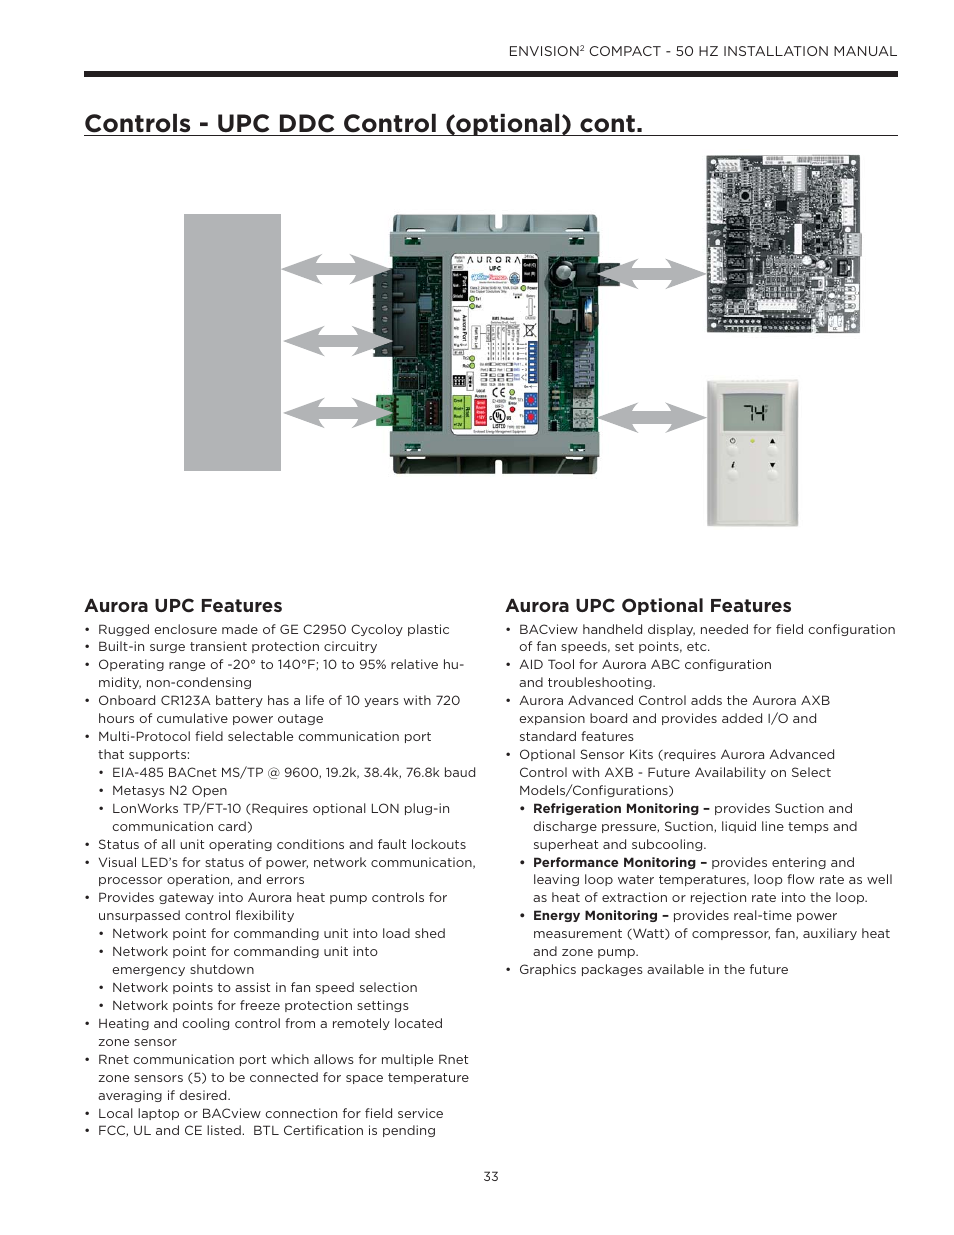 Ddc Controls Bms Wiring Diagram Upc Control Optional Cont Aurora Features 954x1235